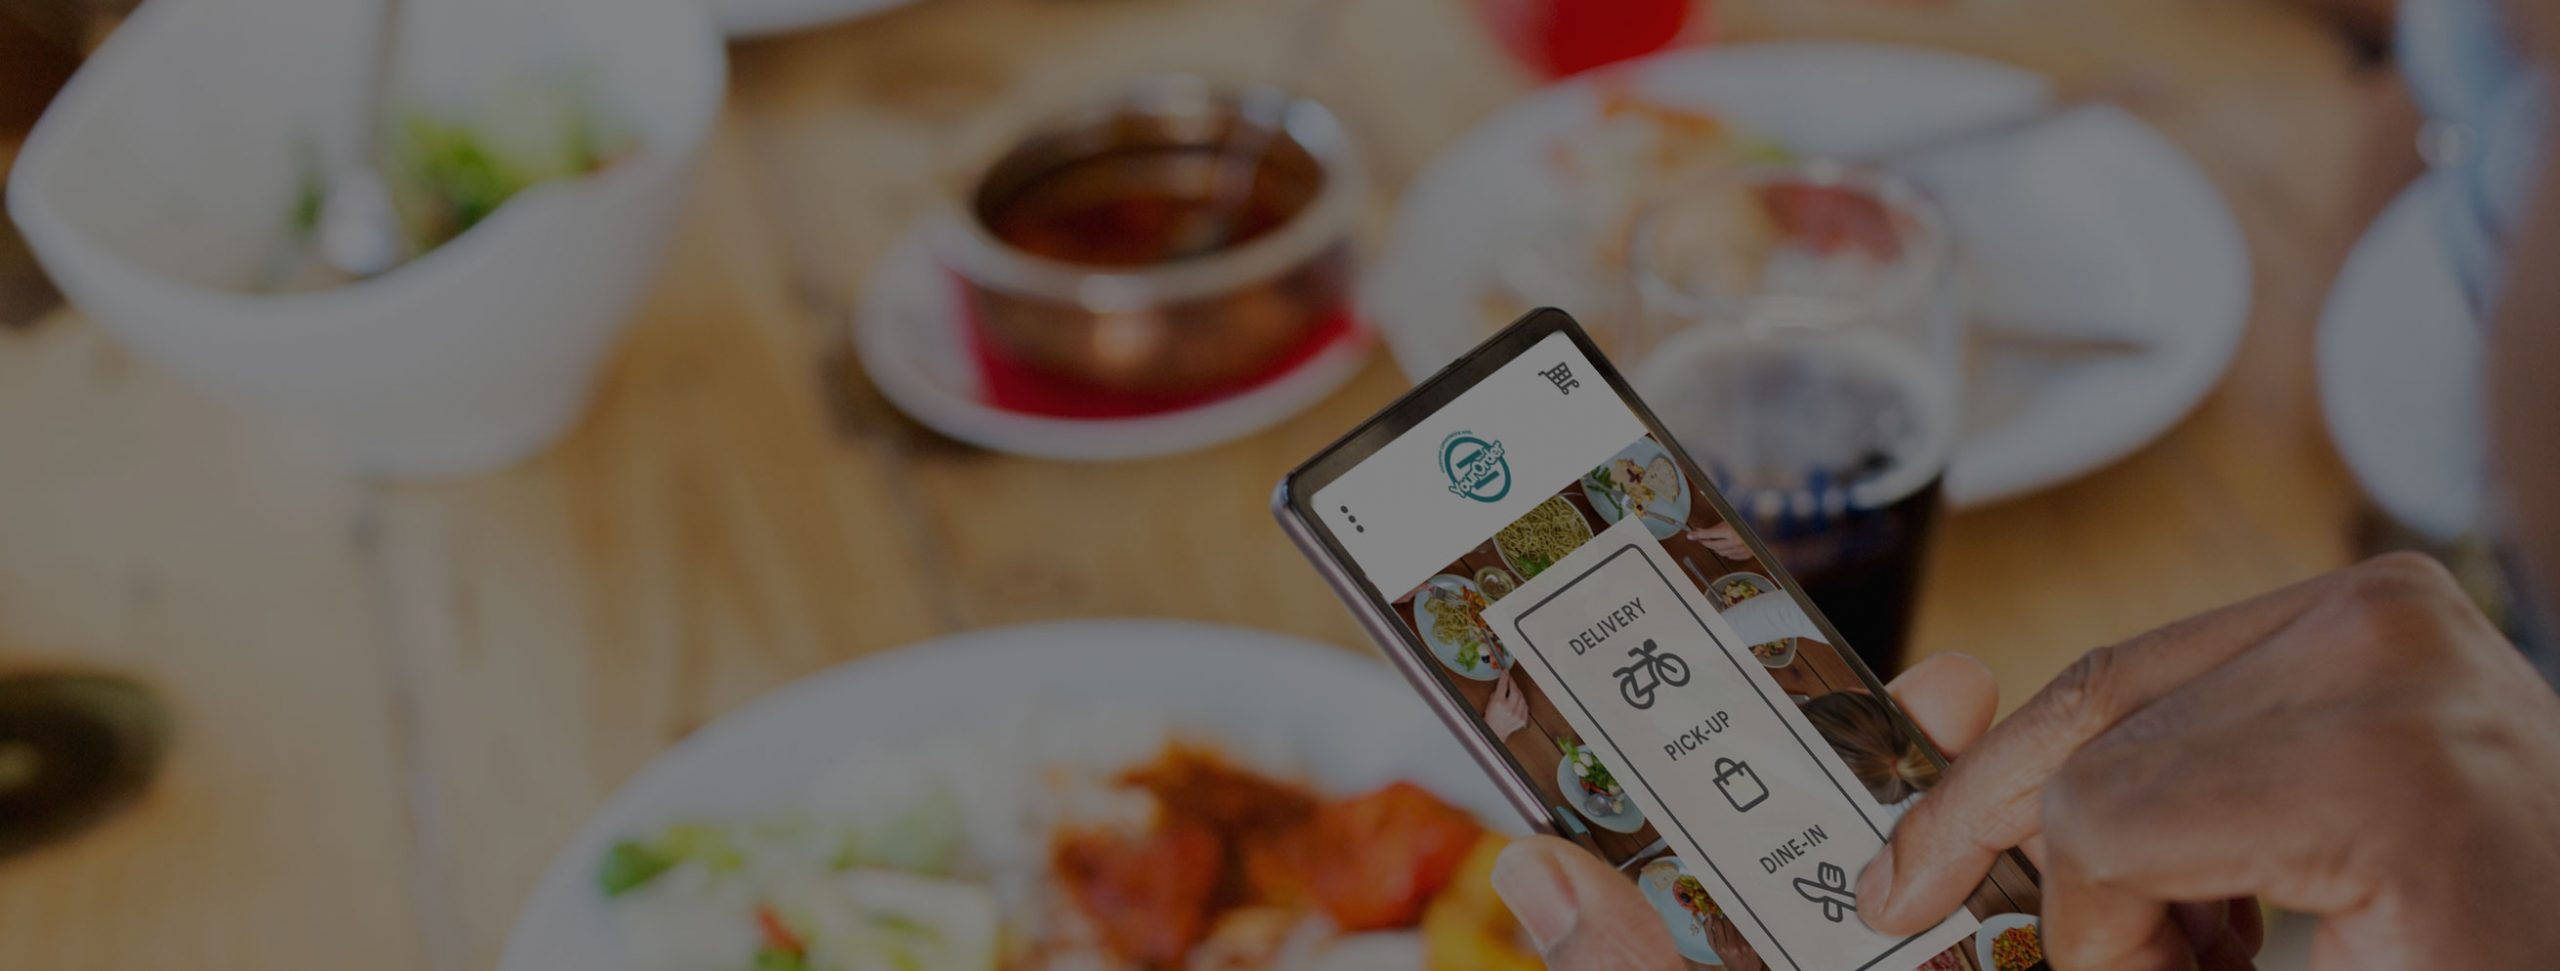 self ordering at table yourorder